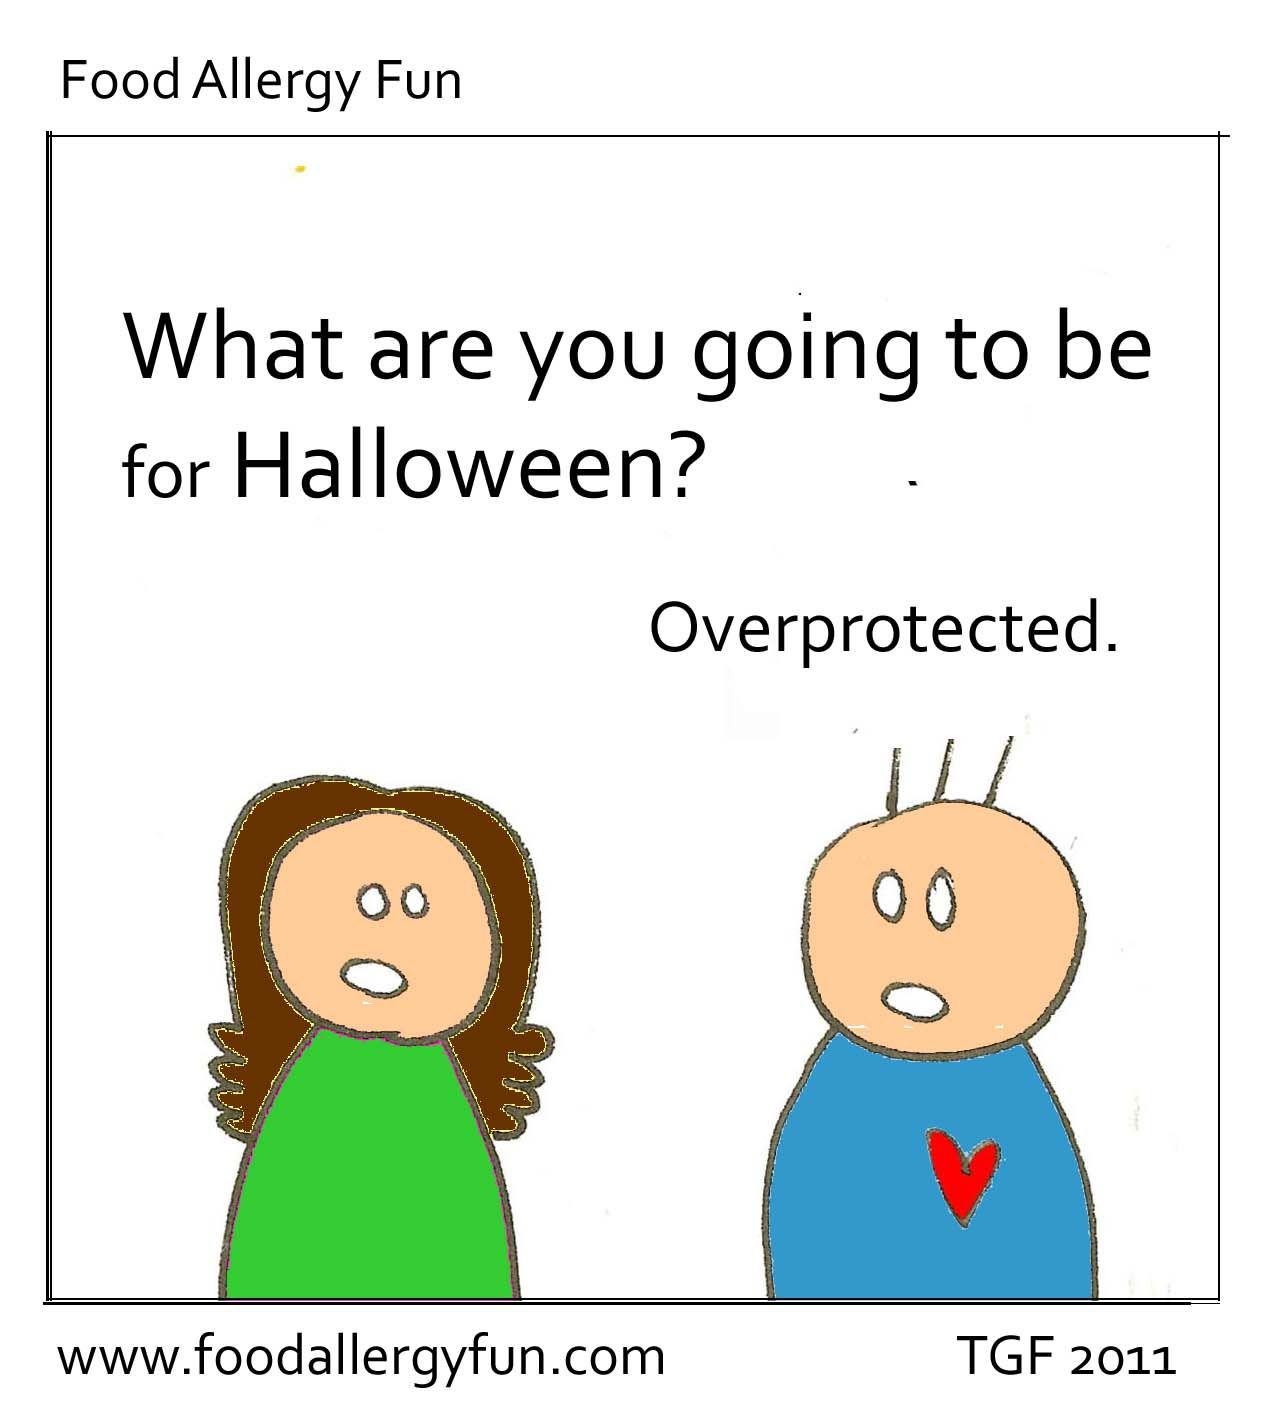 Halloween food allergy cartoon google search allergies halloween food allergy cartoon google search forumfinder Images